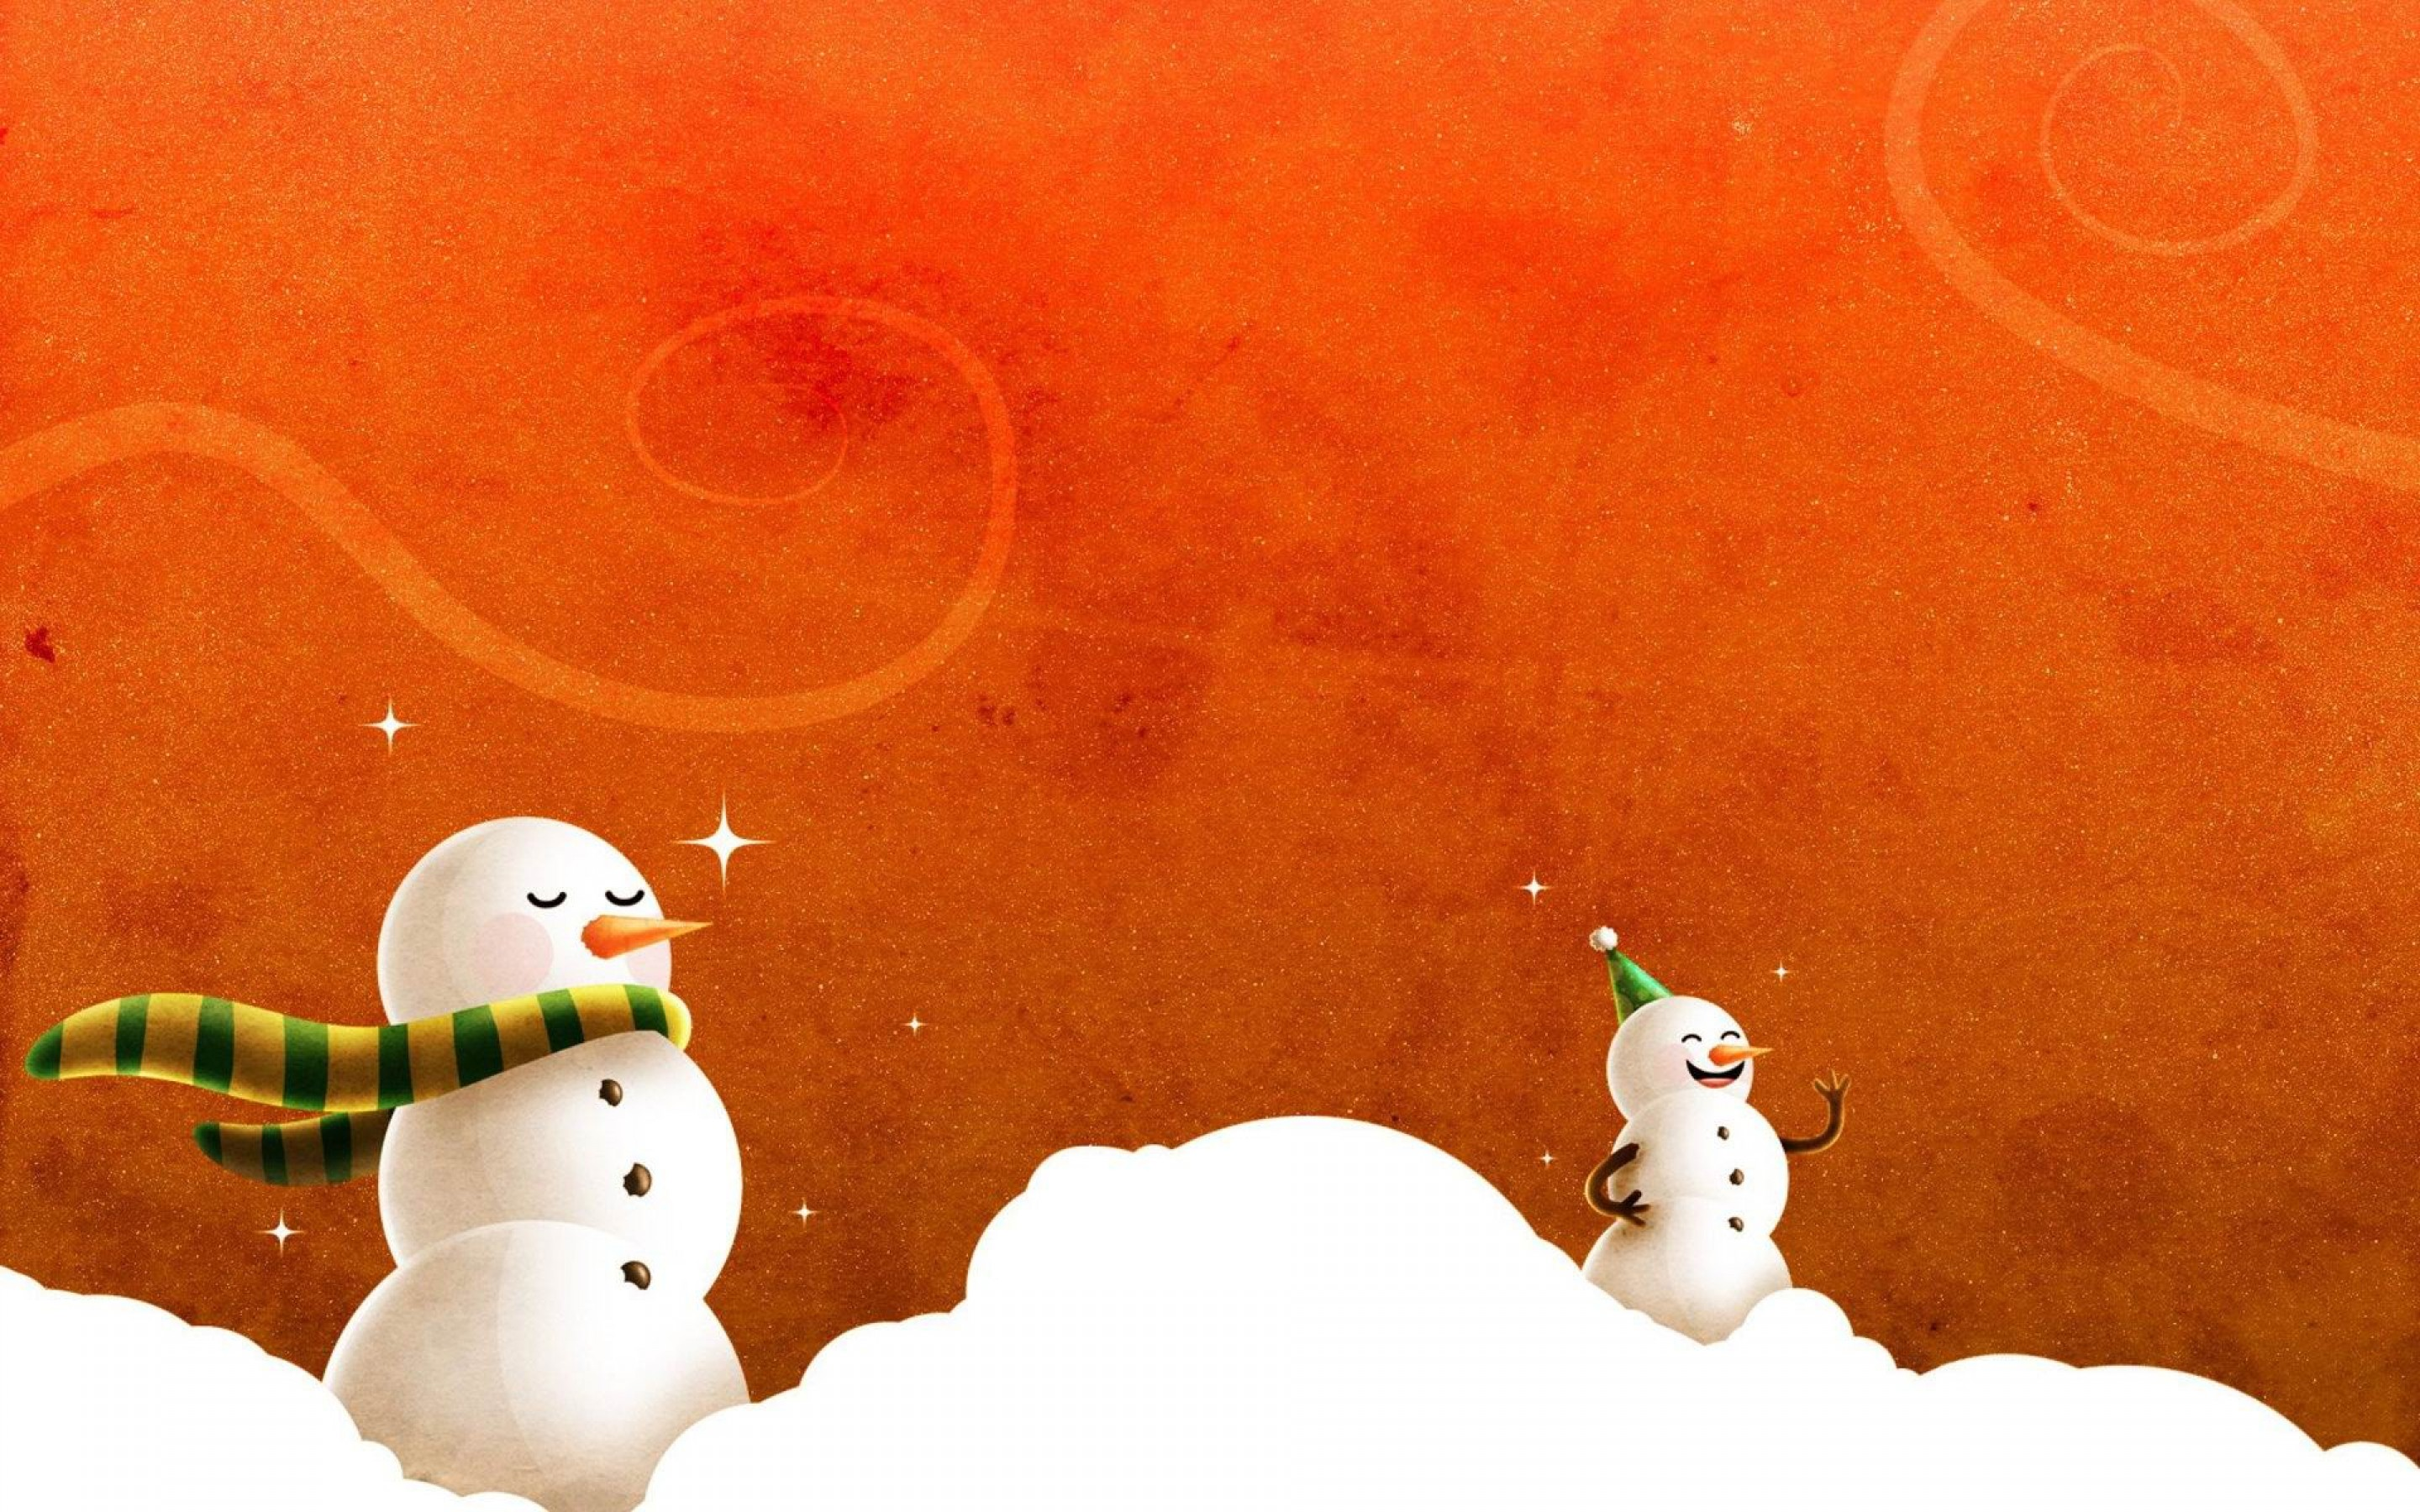 Christmas Background Hd.25 Super Hd Christmas Wallpapers